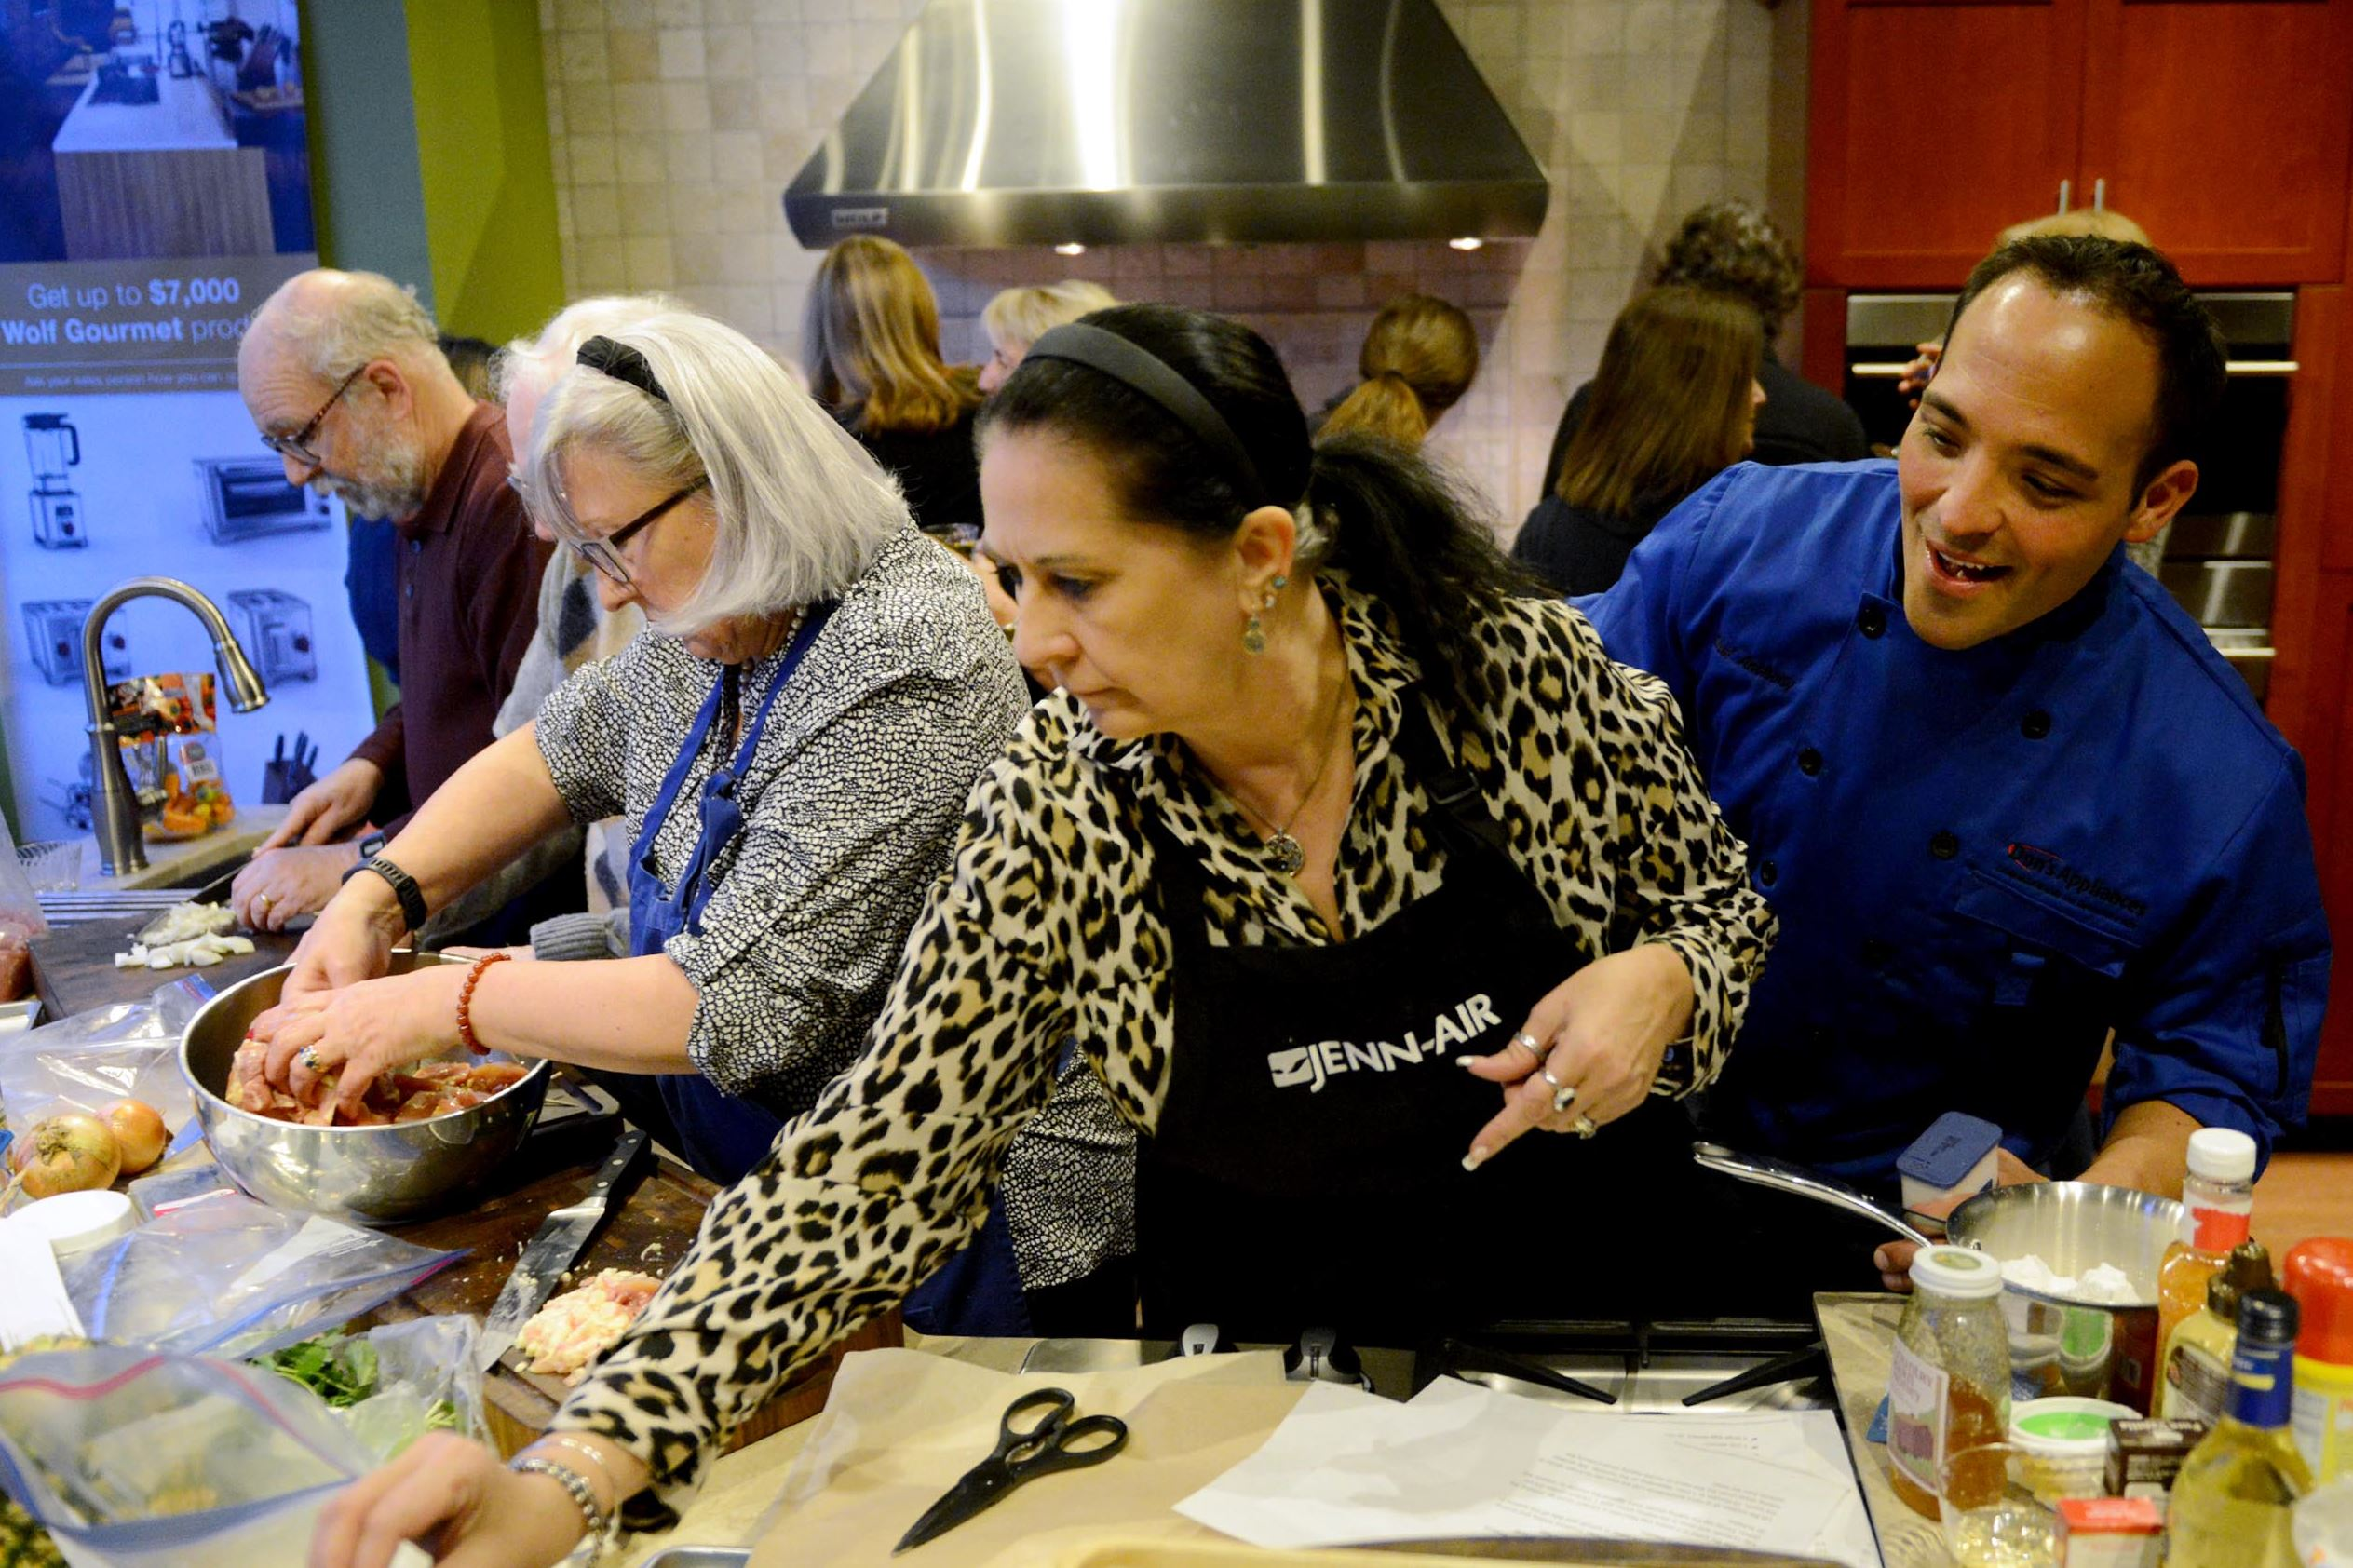 Chef Anthony Marino Brings Enthusiasm To Pittsburgh Home